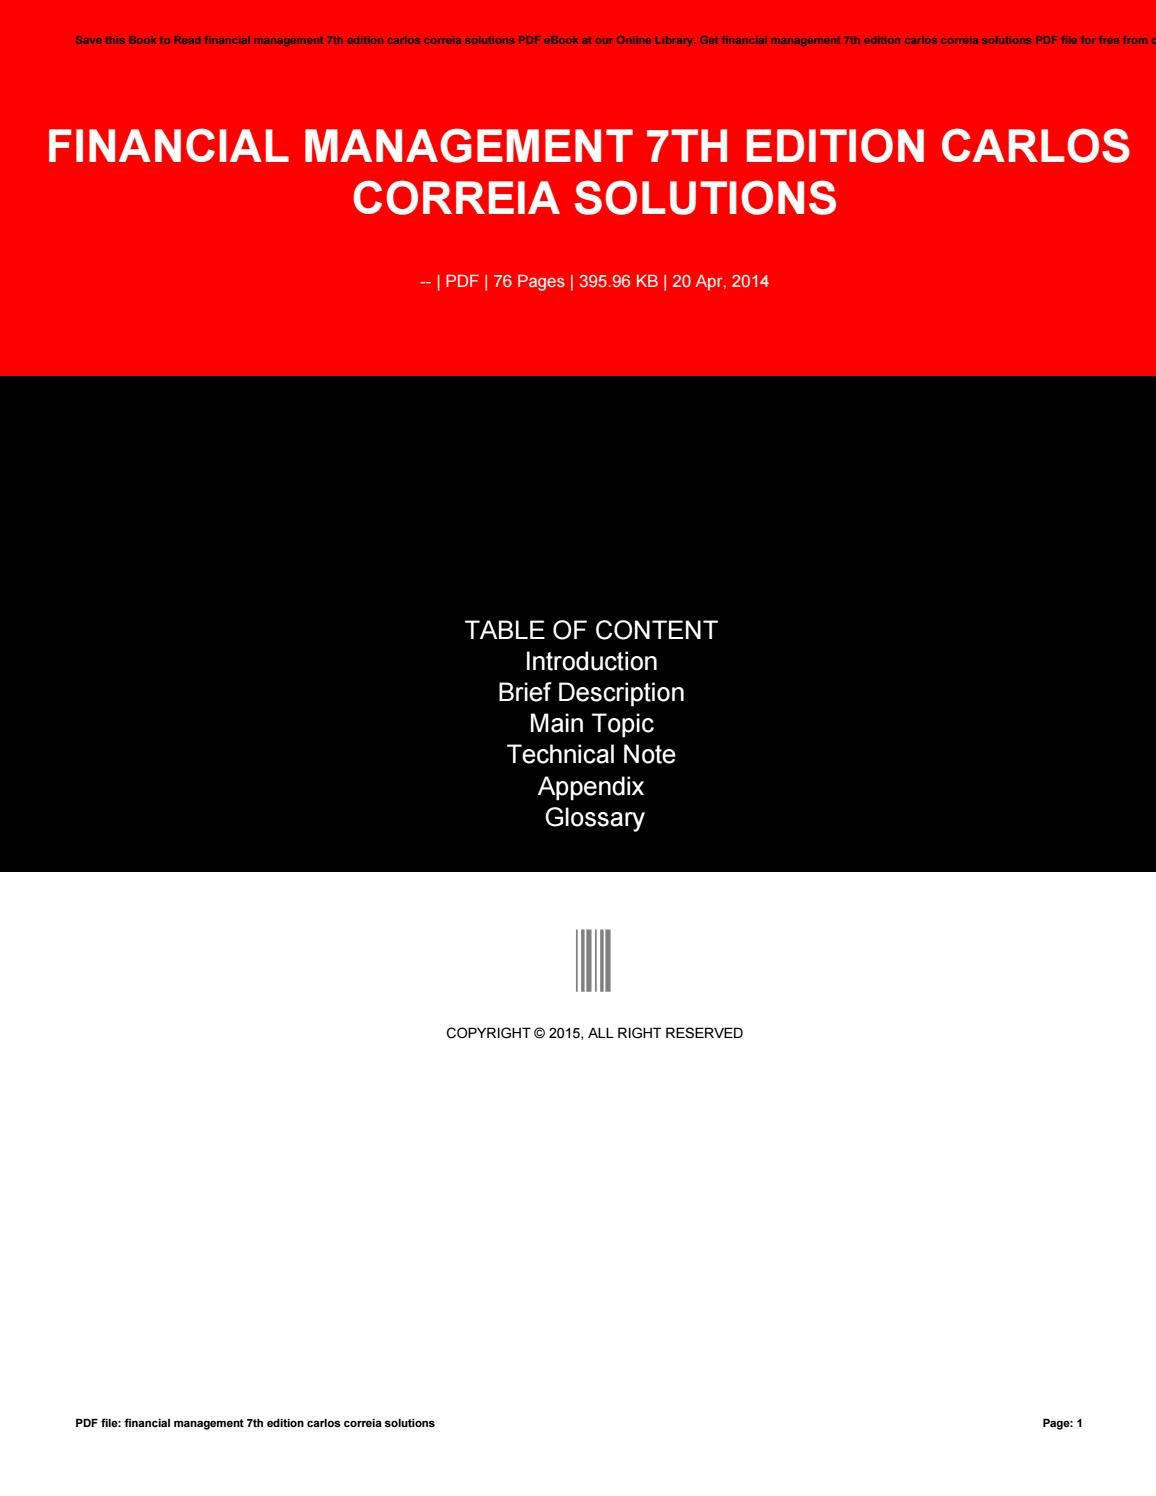 financial management 7th edition carlos correia solutions